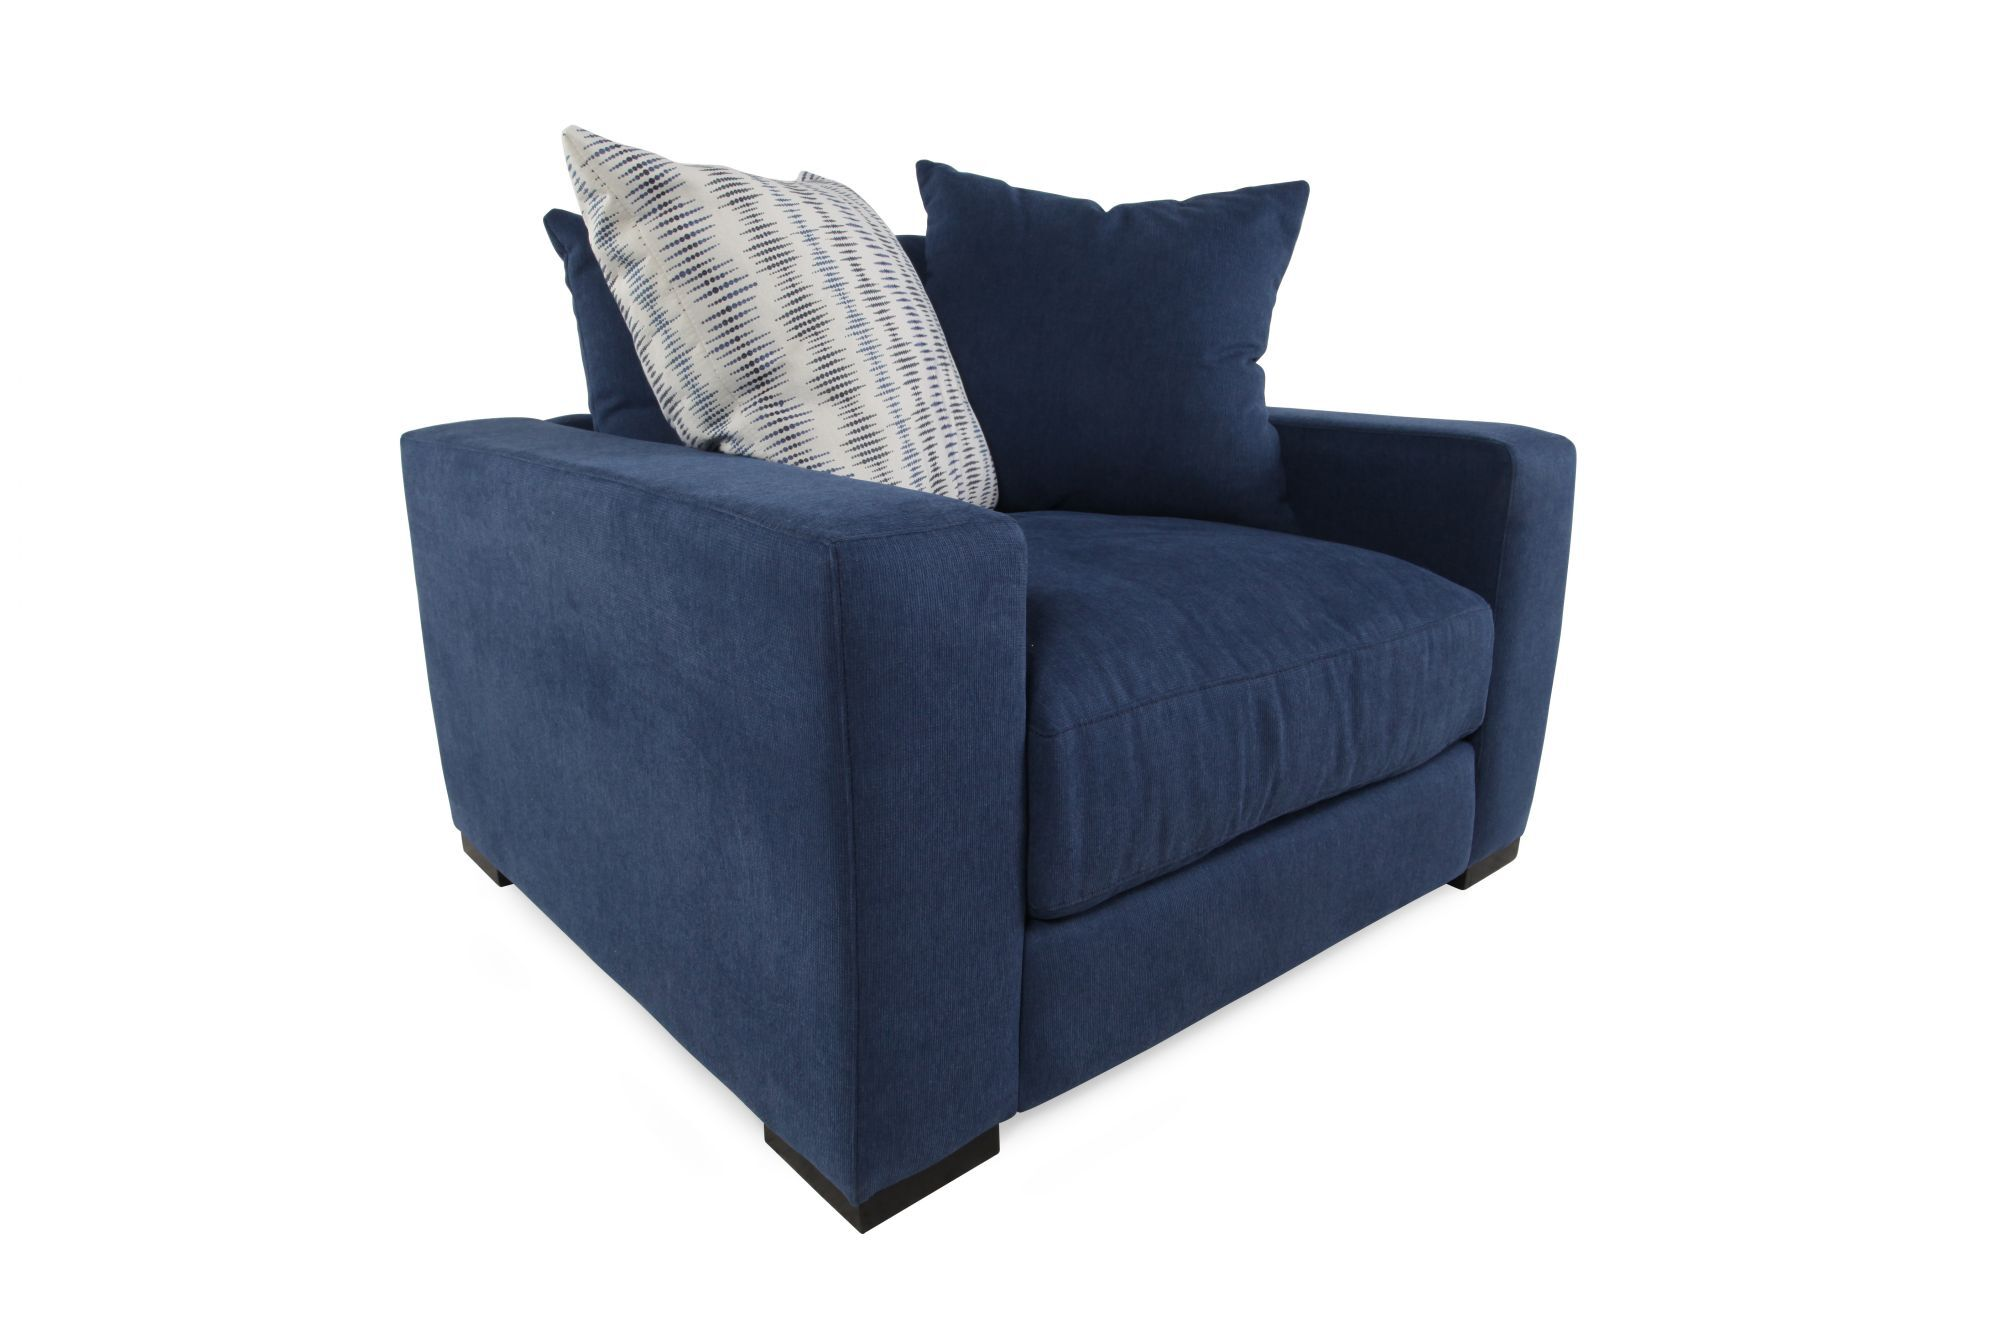 LowProfile Casual Arm Chair in Blue  Mathis Brothers